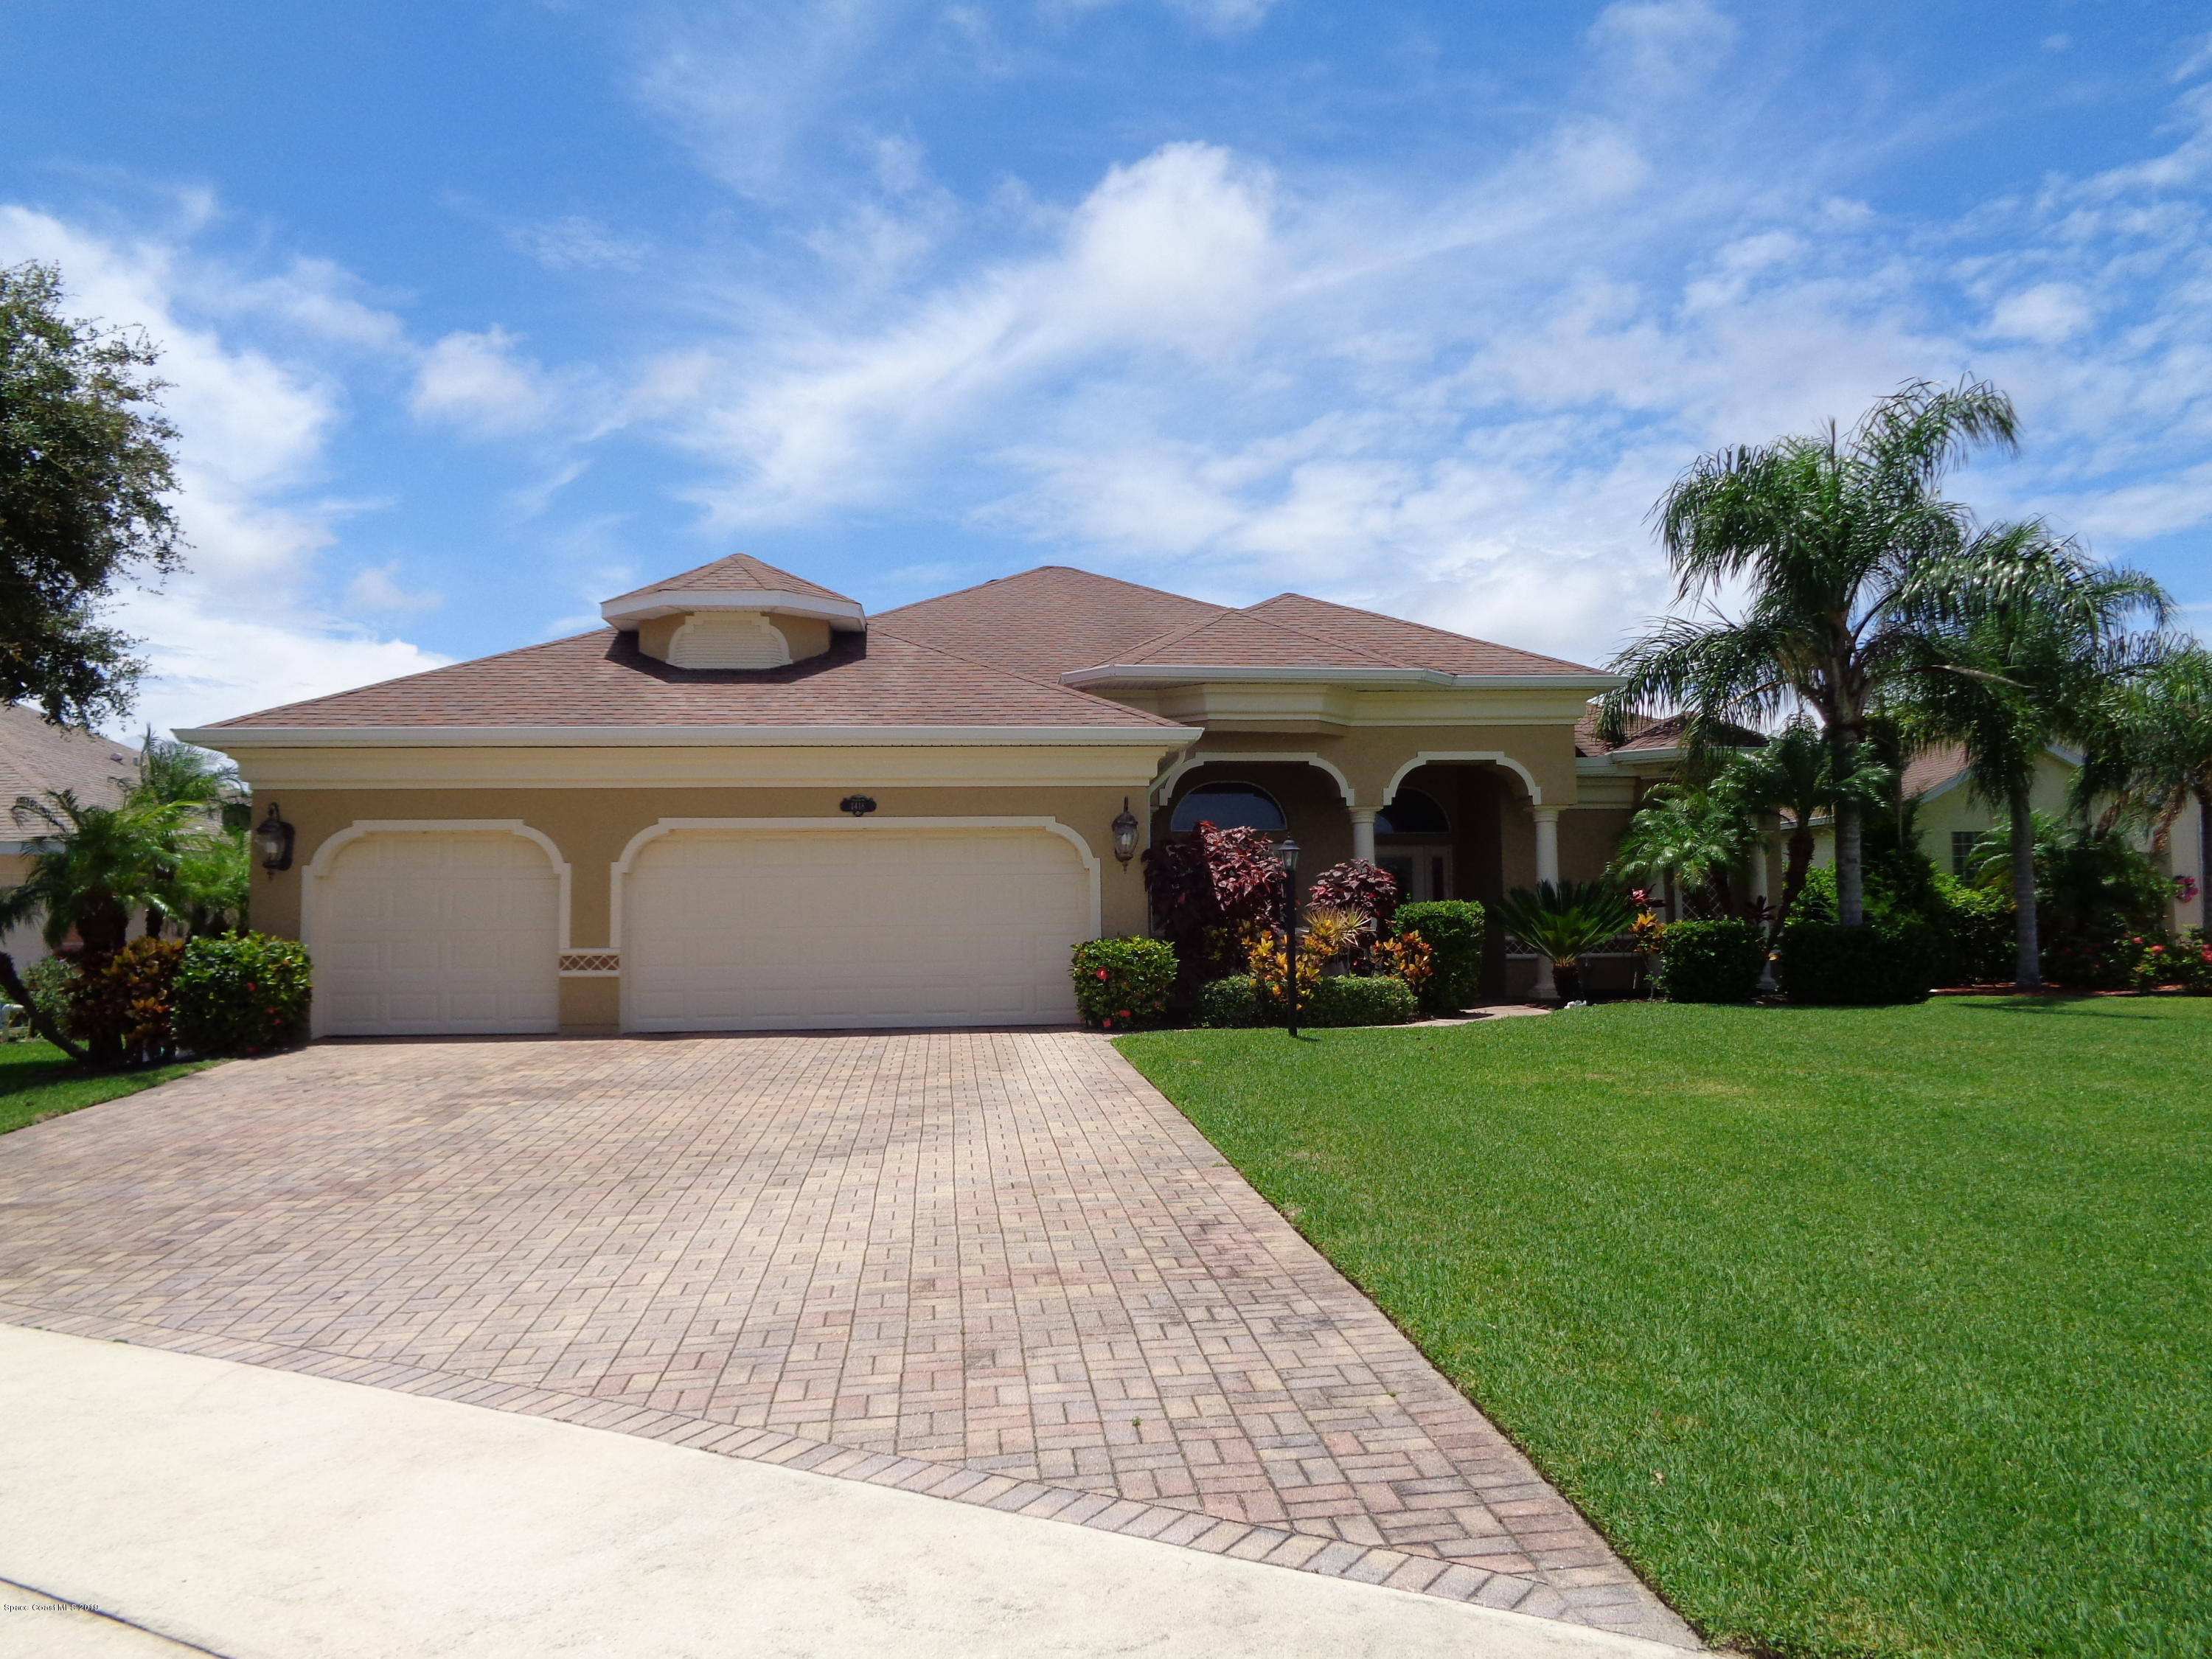 Single Family Homes for Sale at 1418 Tipperary Melbourne, Florida 32940 United States